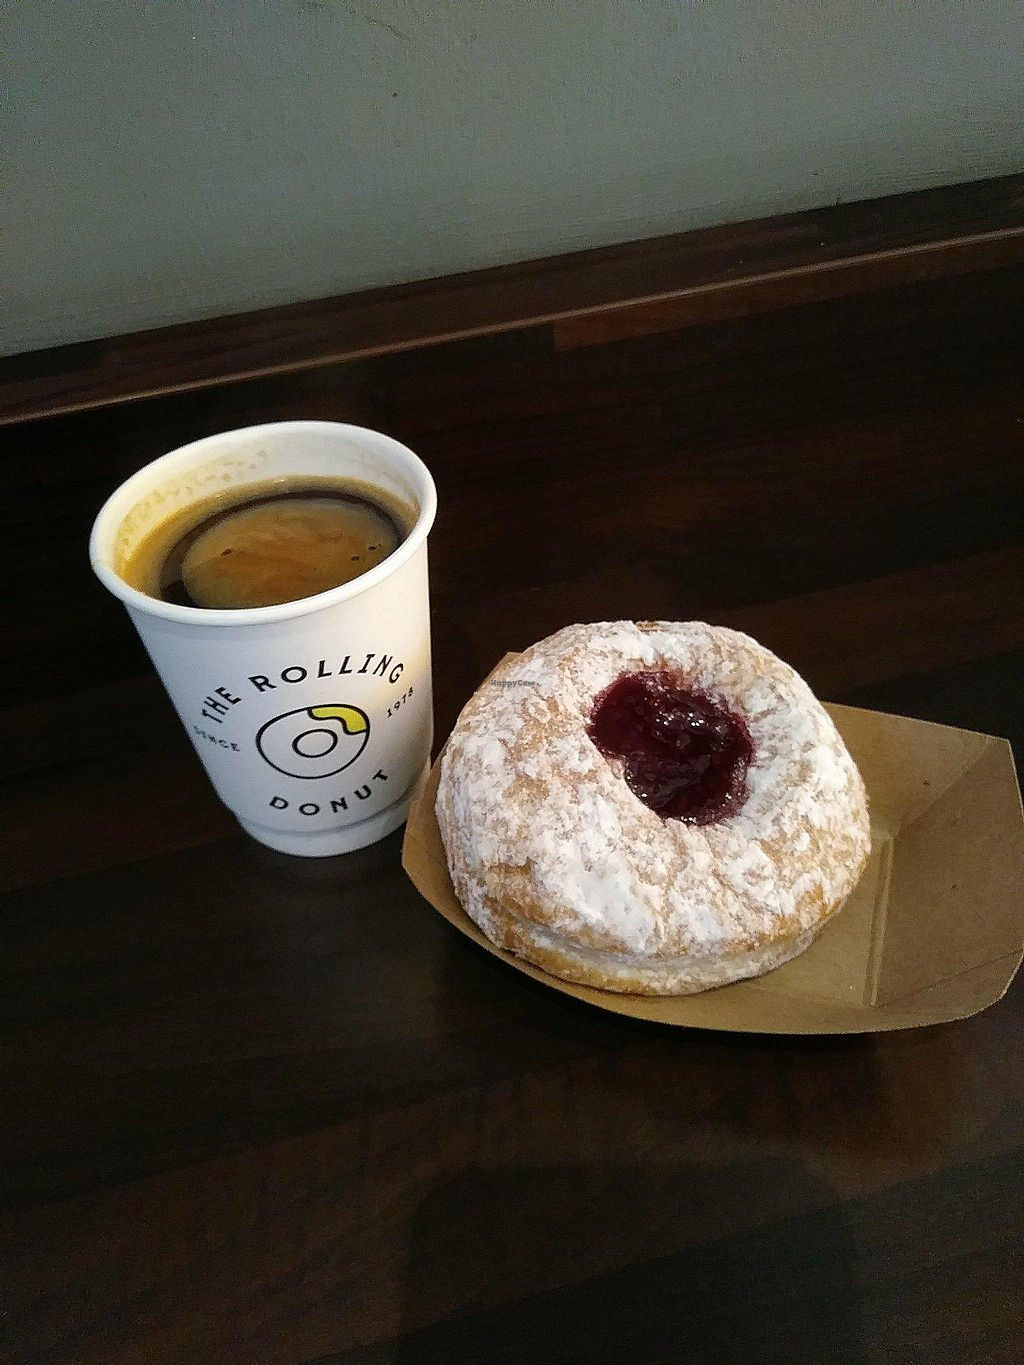 """Photo of The Rolling Donut - Dublin 1  by <a href=""""/members/profile/happyhippieellie"""">happyhippieellie</a> <br/>Vegan Jelly Donut and a coffee! <br/> January 9, 2018  - <a href='/contact/abuse/image/83413/344782'>Report</a>"""